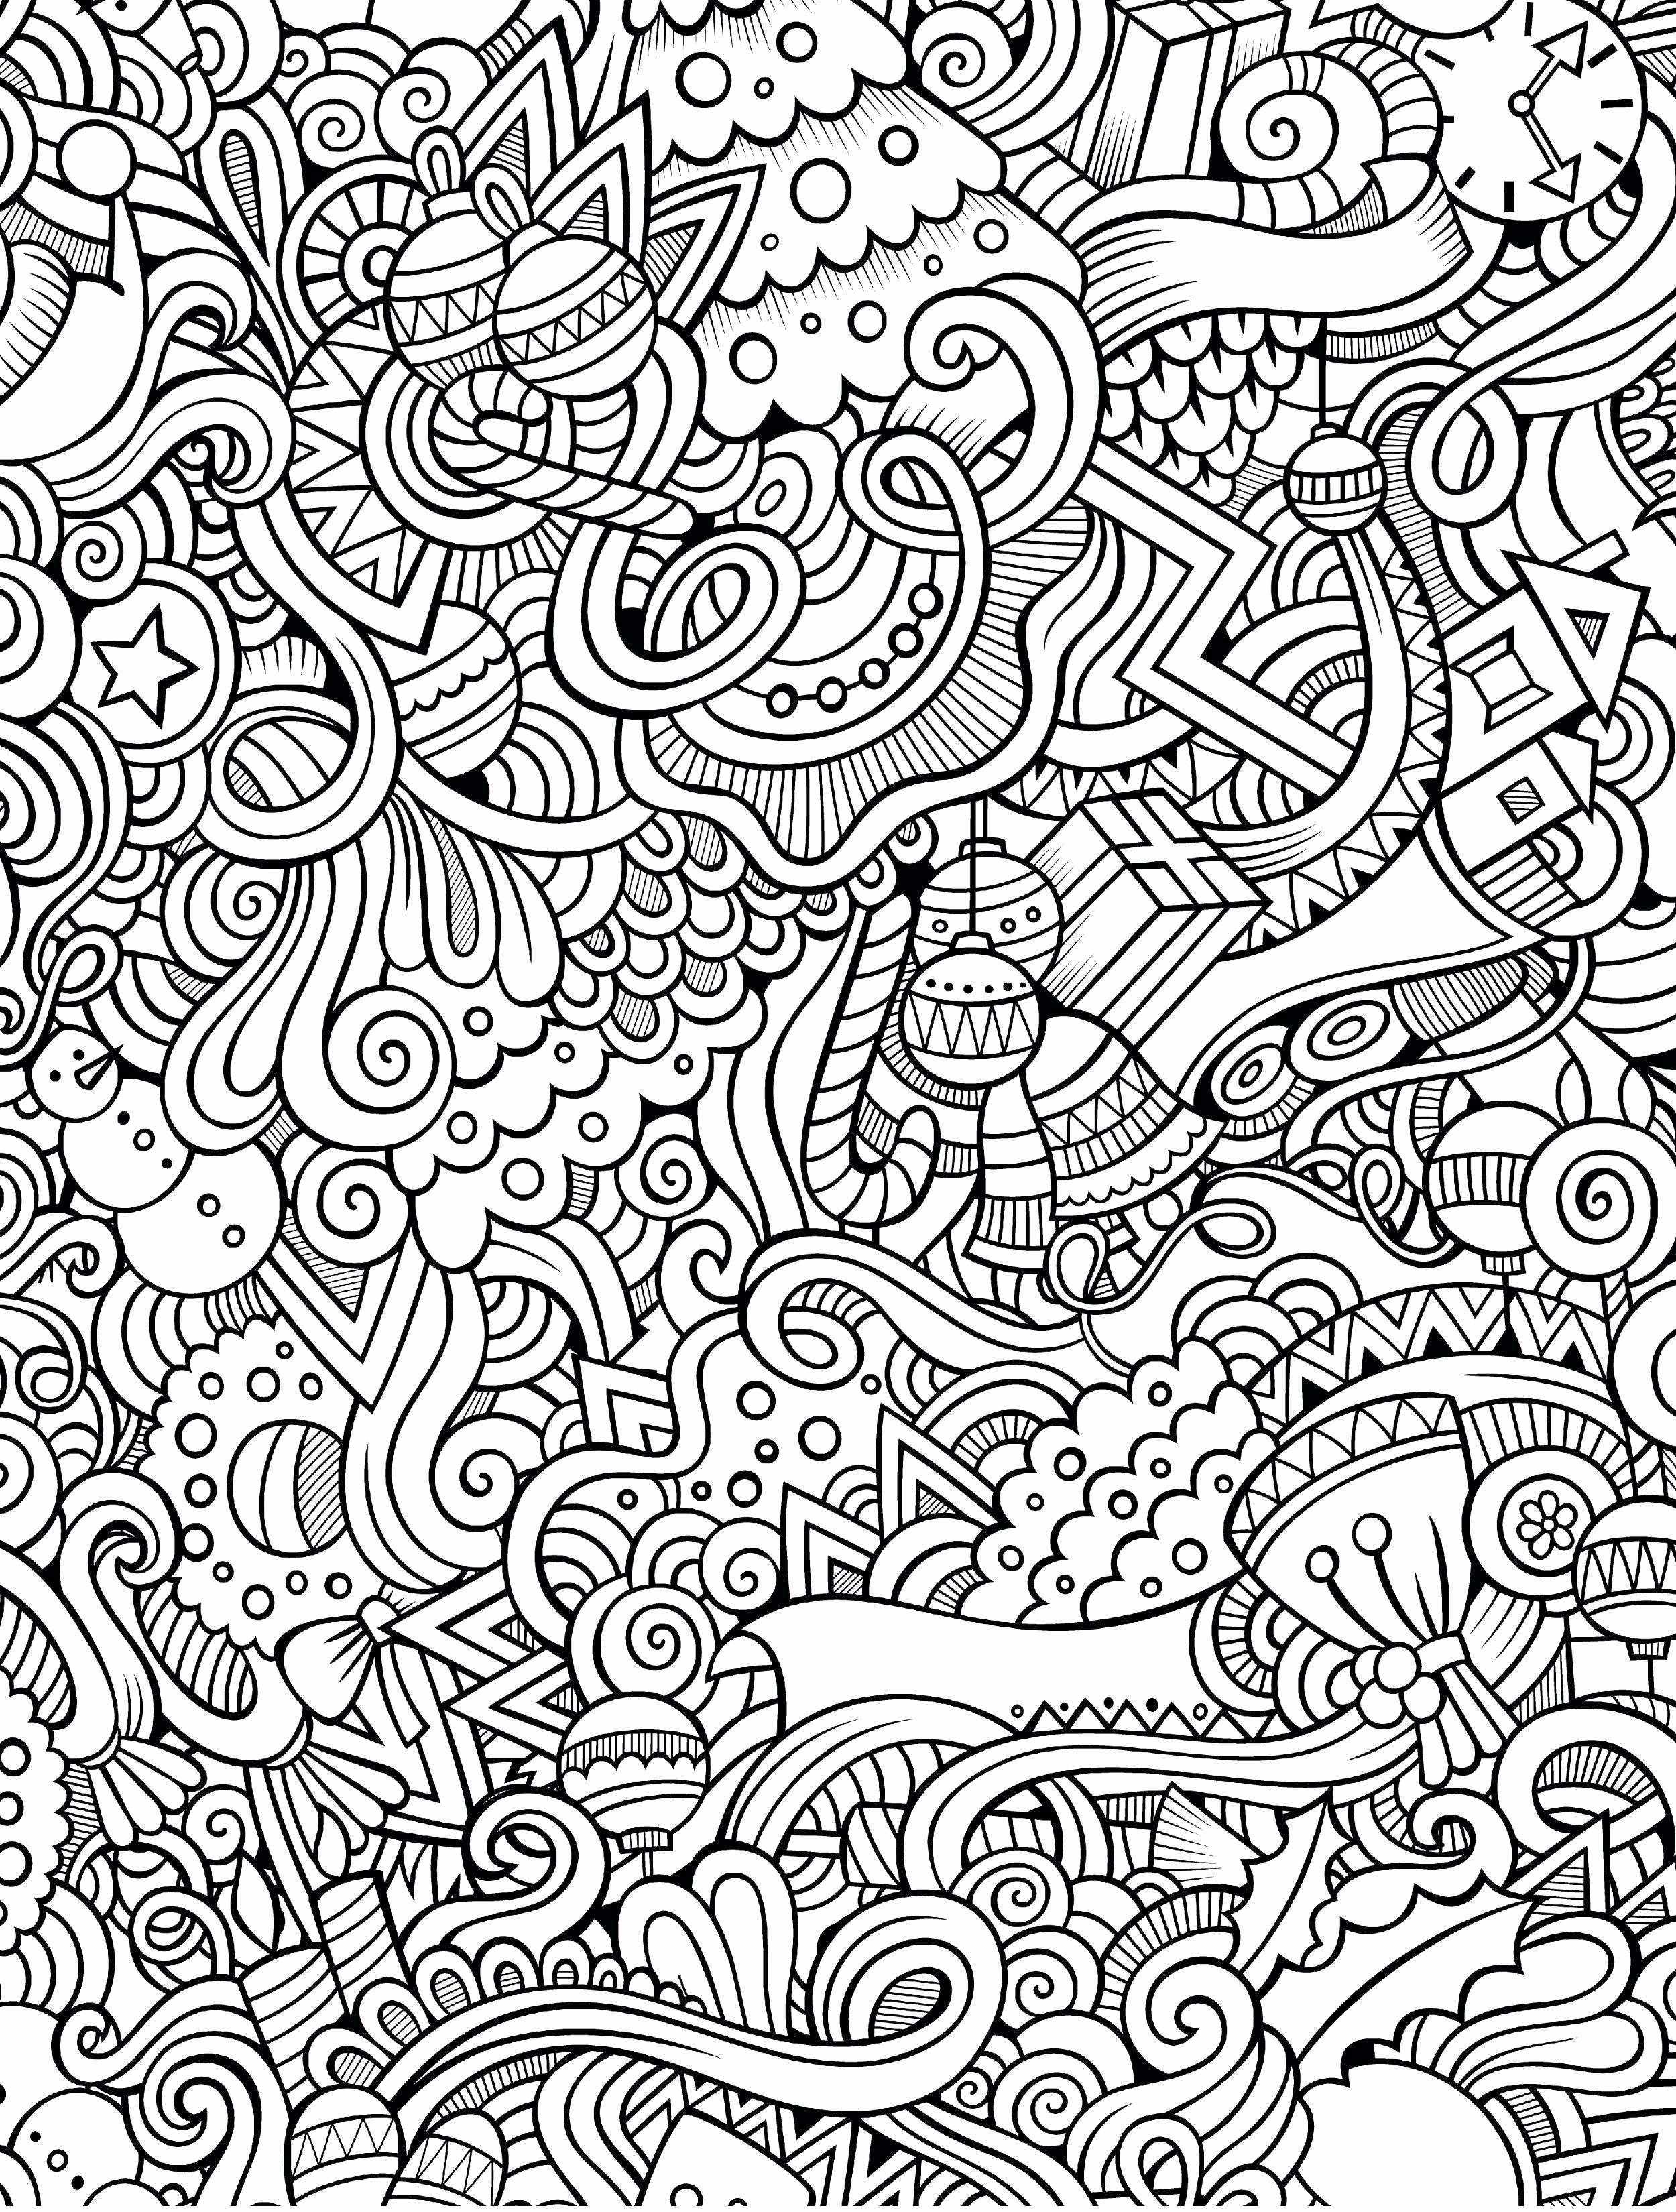 Christmas Intricate Coloring Pages With Difficult Of Animals Free Line